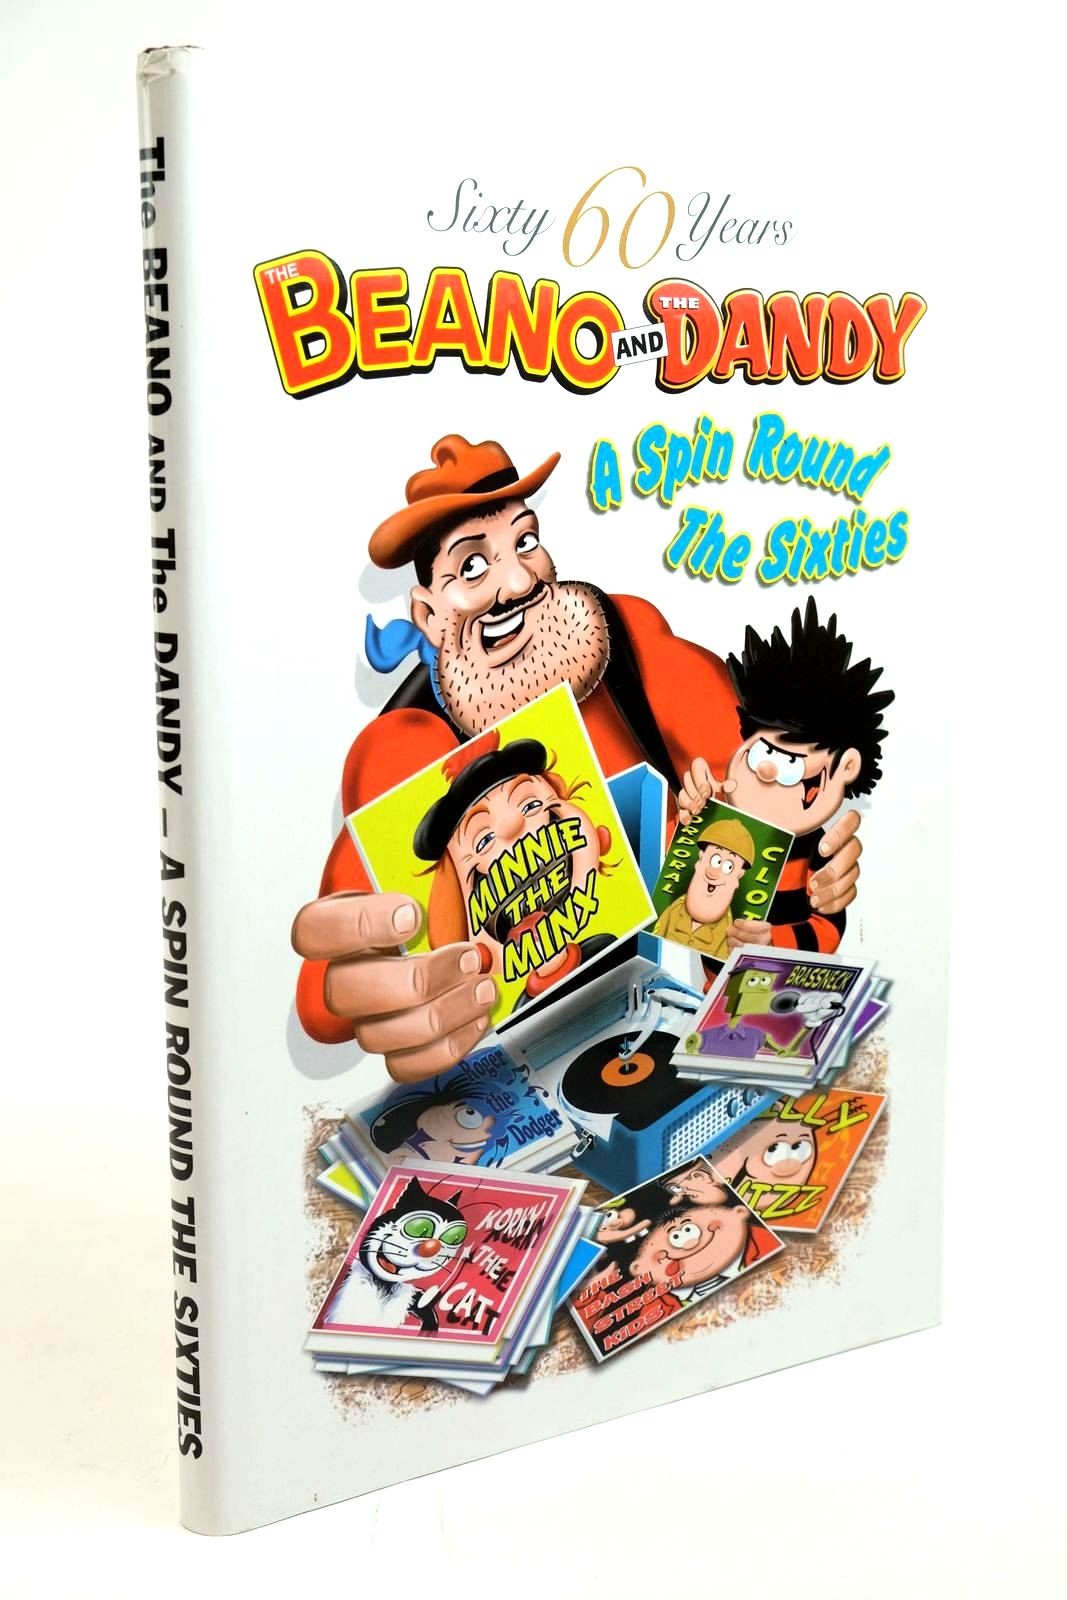 Photo of THE BEANO AND THE DANDY A SPIN ROUND THE SIXTIES published by D.C. Thomson & Co Ltd. (STOCK CODE: 1321434)  for sale by Stella & Rose's Books